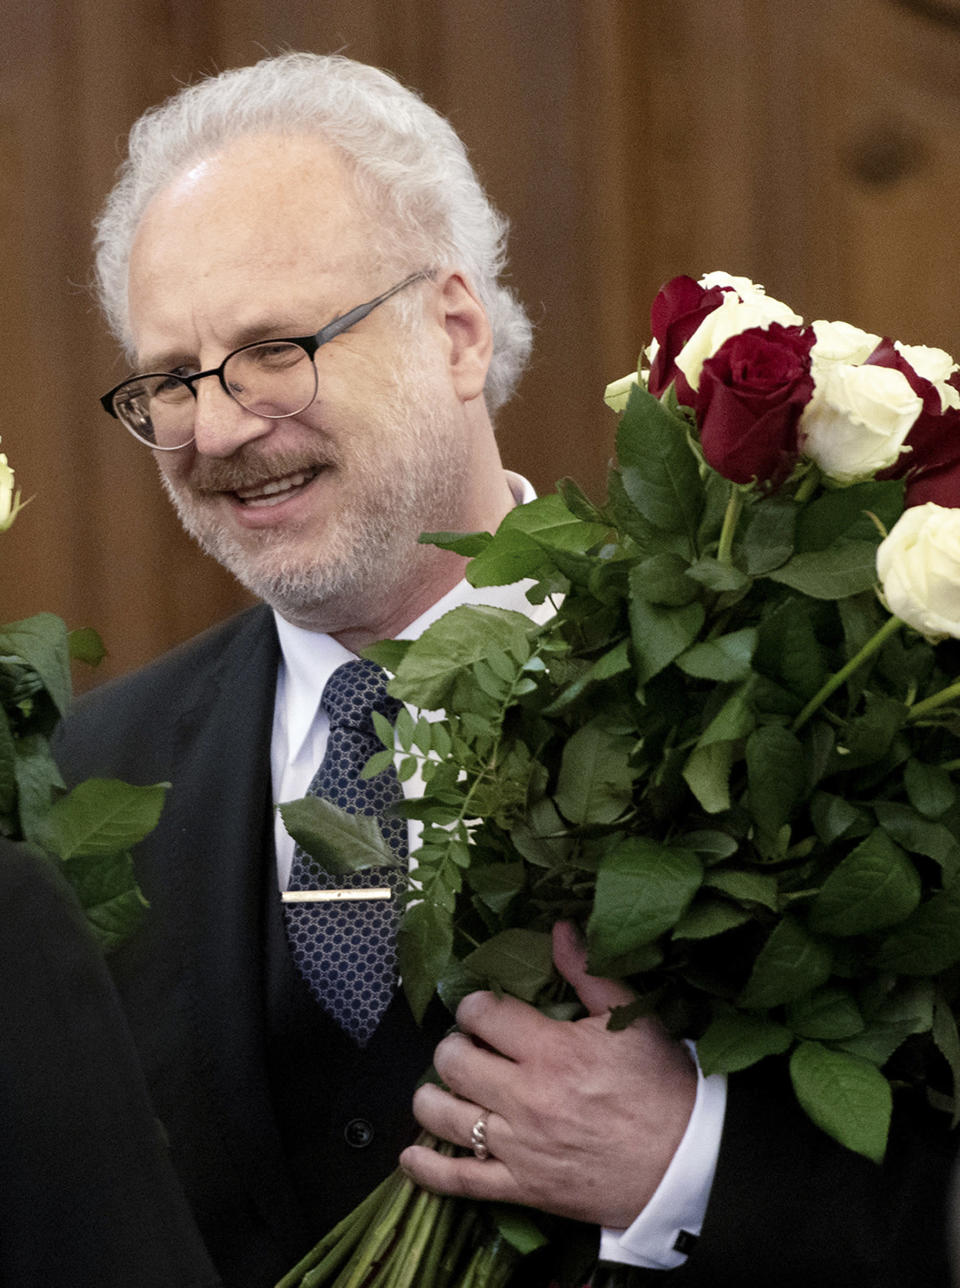 Newly elected Latvian President Egils Levits hold a bunch of flowers after lawmakers elected him in a parliament in Riga, Latvia, Wednesday, May 29, 2019. Levits received 61 votes already in the first round of voting, well above the 51 needed to win the election. (Vladislavs Proskins,/F64 Photo Agency via AP)